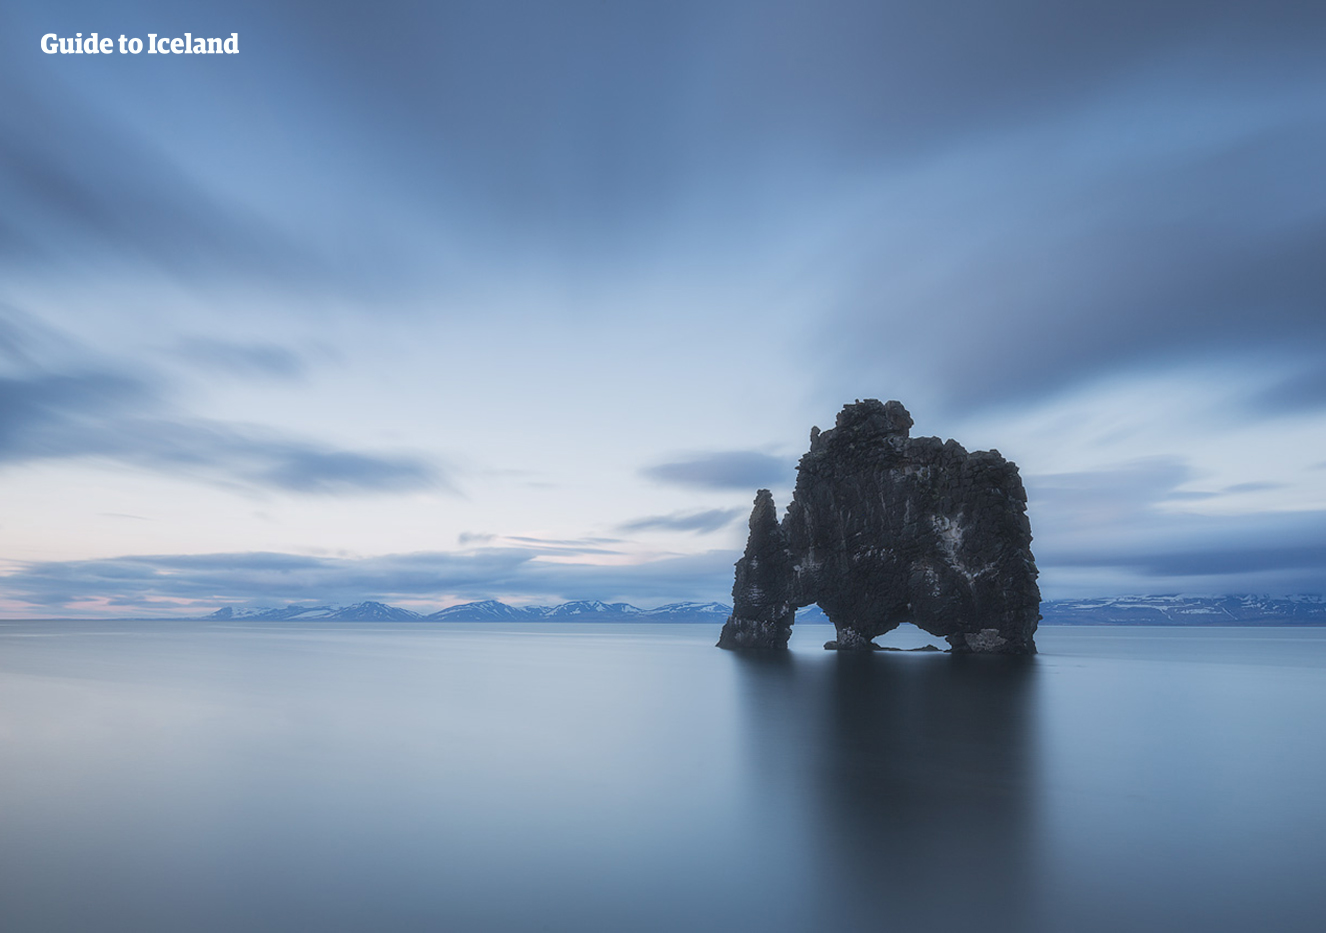 The dramatic Hvítserkur rock formation in north Iceland, rising out of the ocean like a terrifying dragon